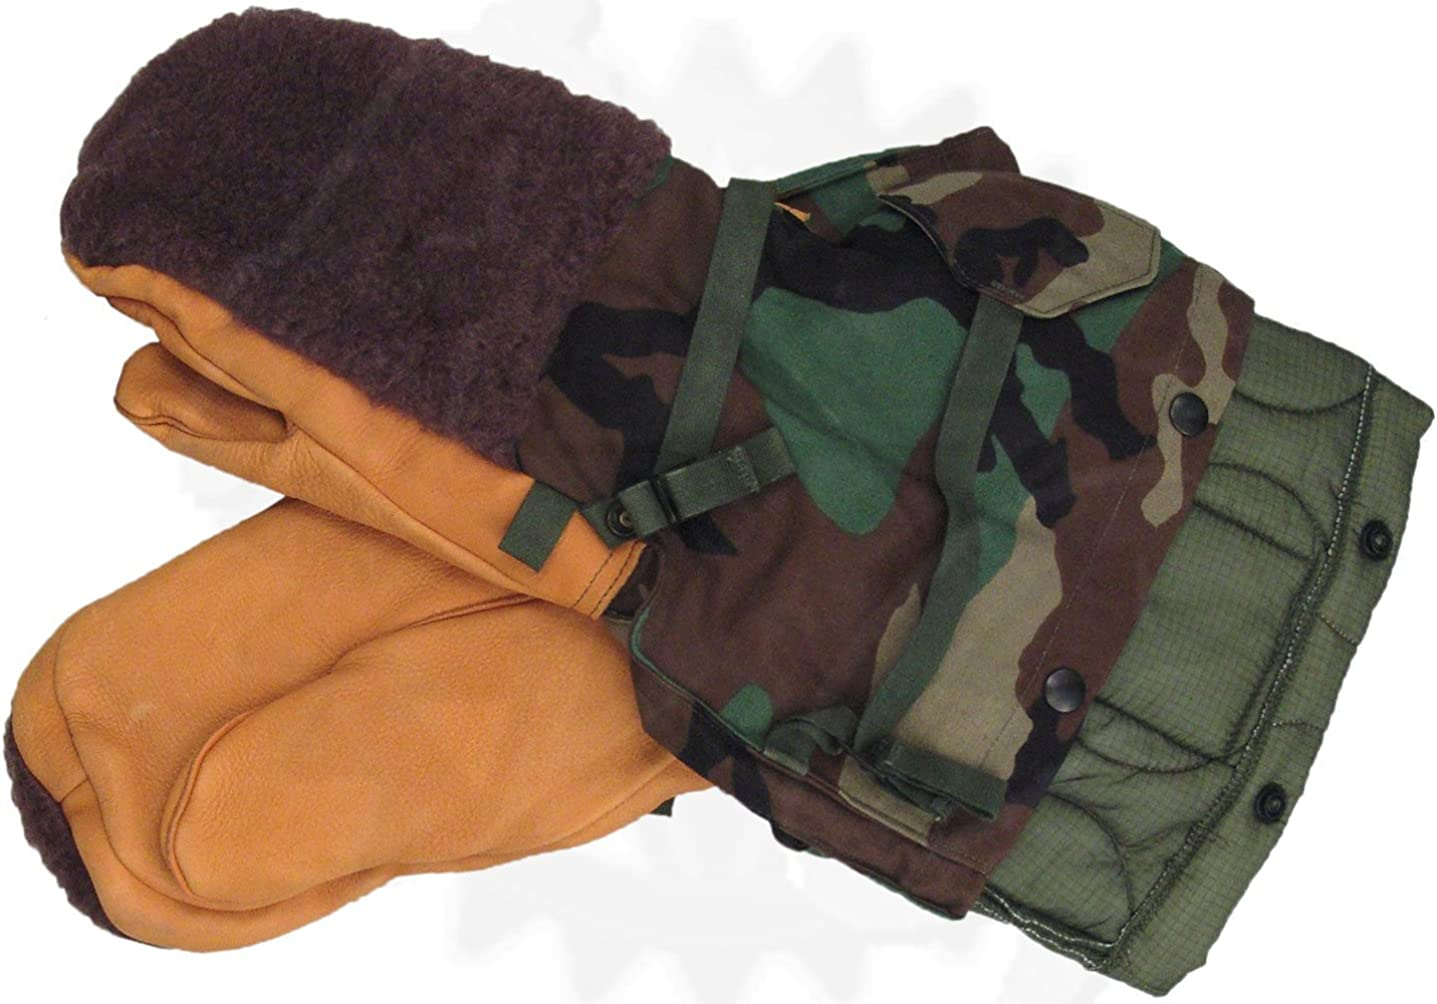 Woodland Camo GI Cold Weather Mitten Set Army Surplus Made in USA